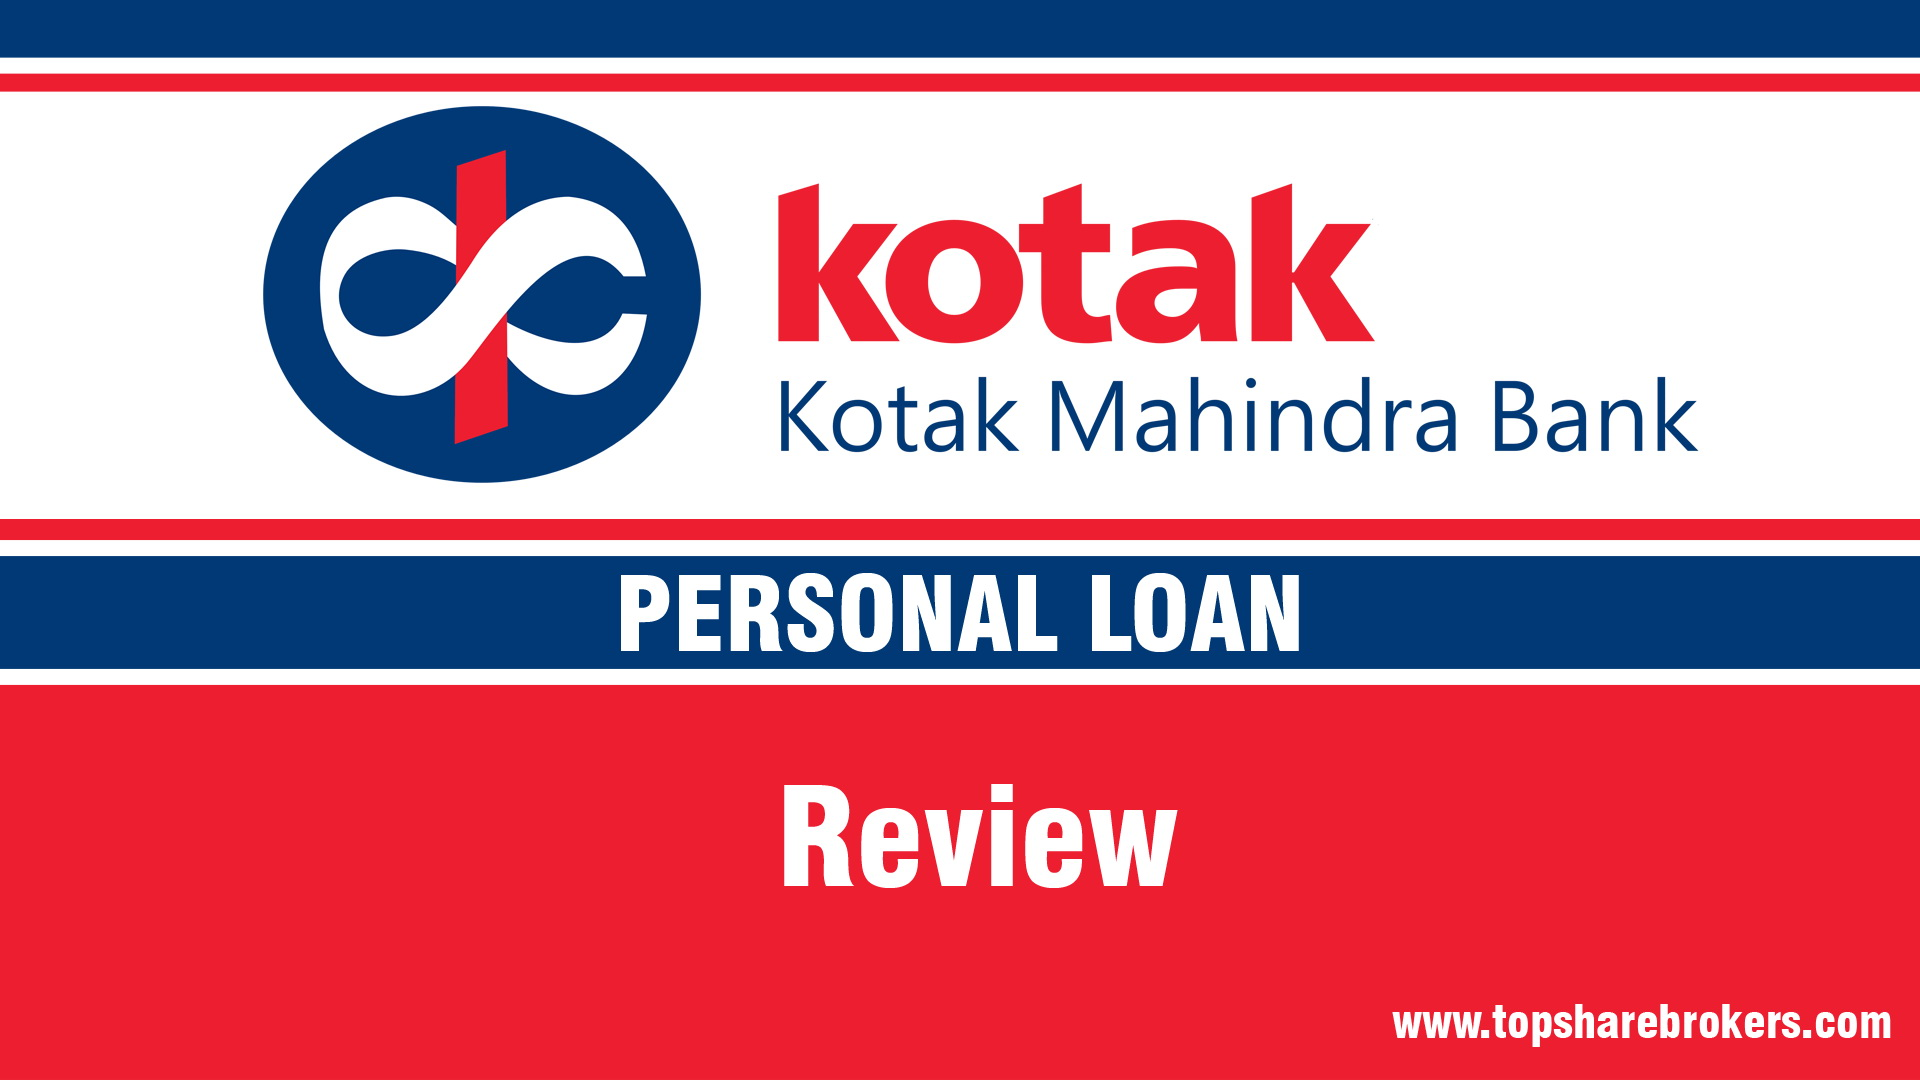 Kotak Mahindra Bank Personal Loan